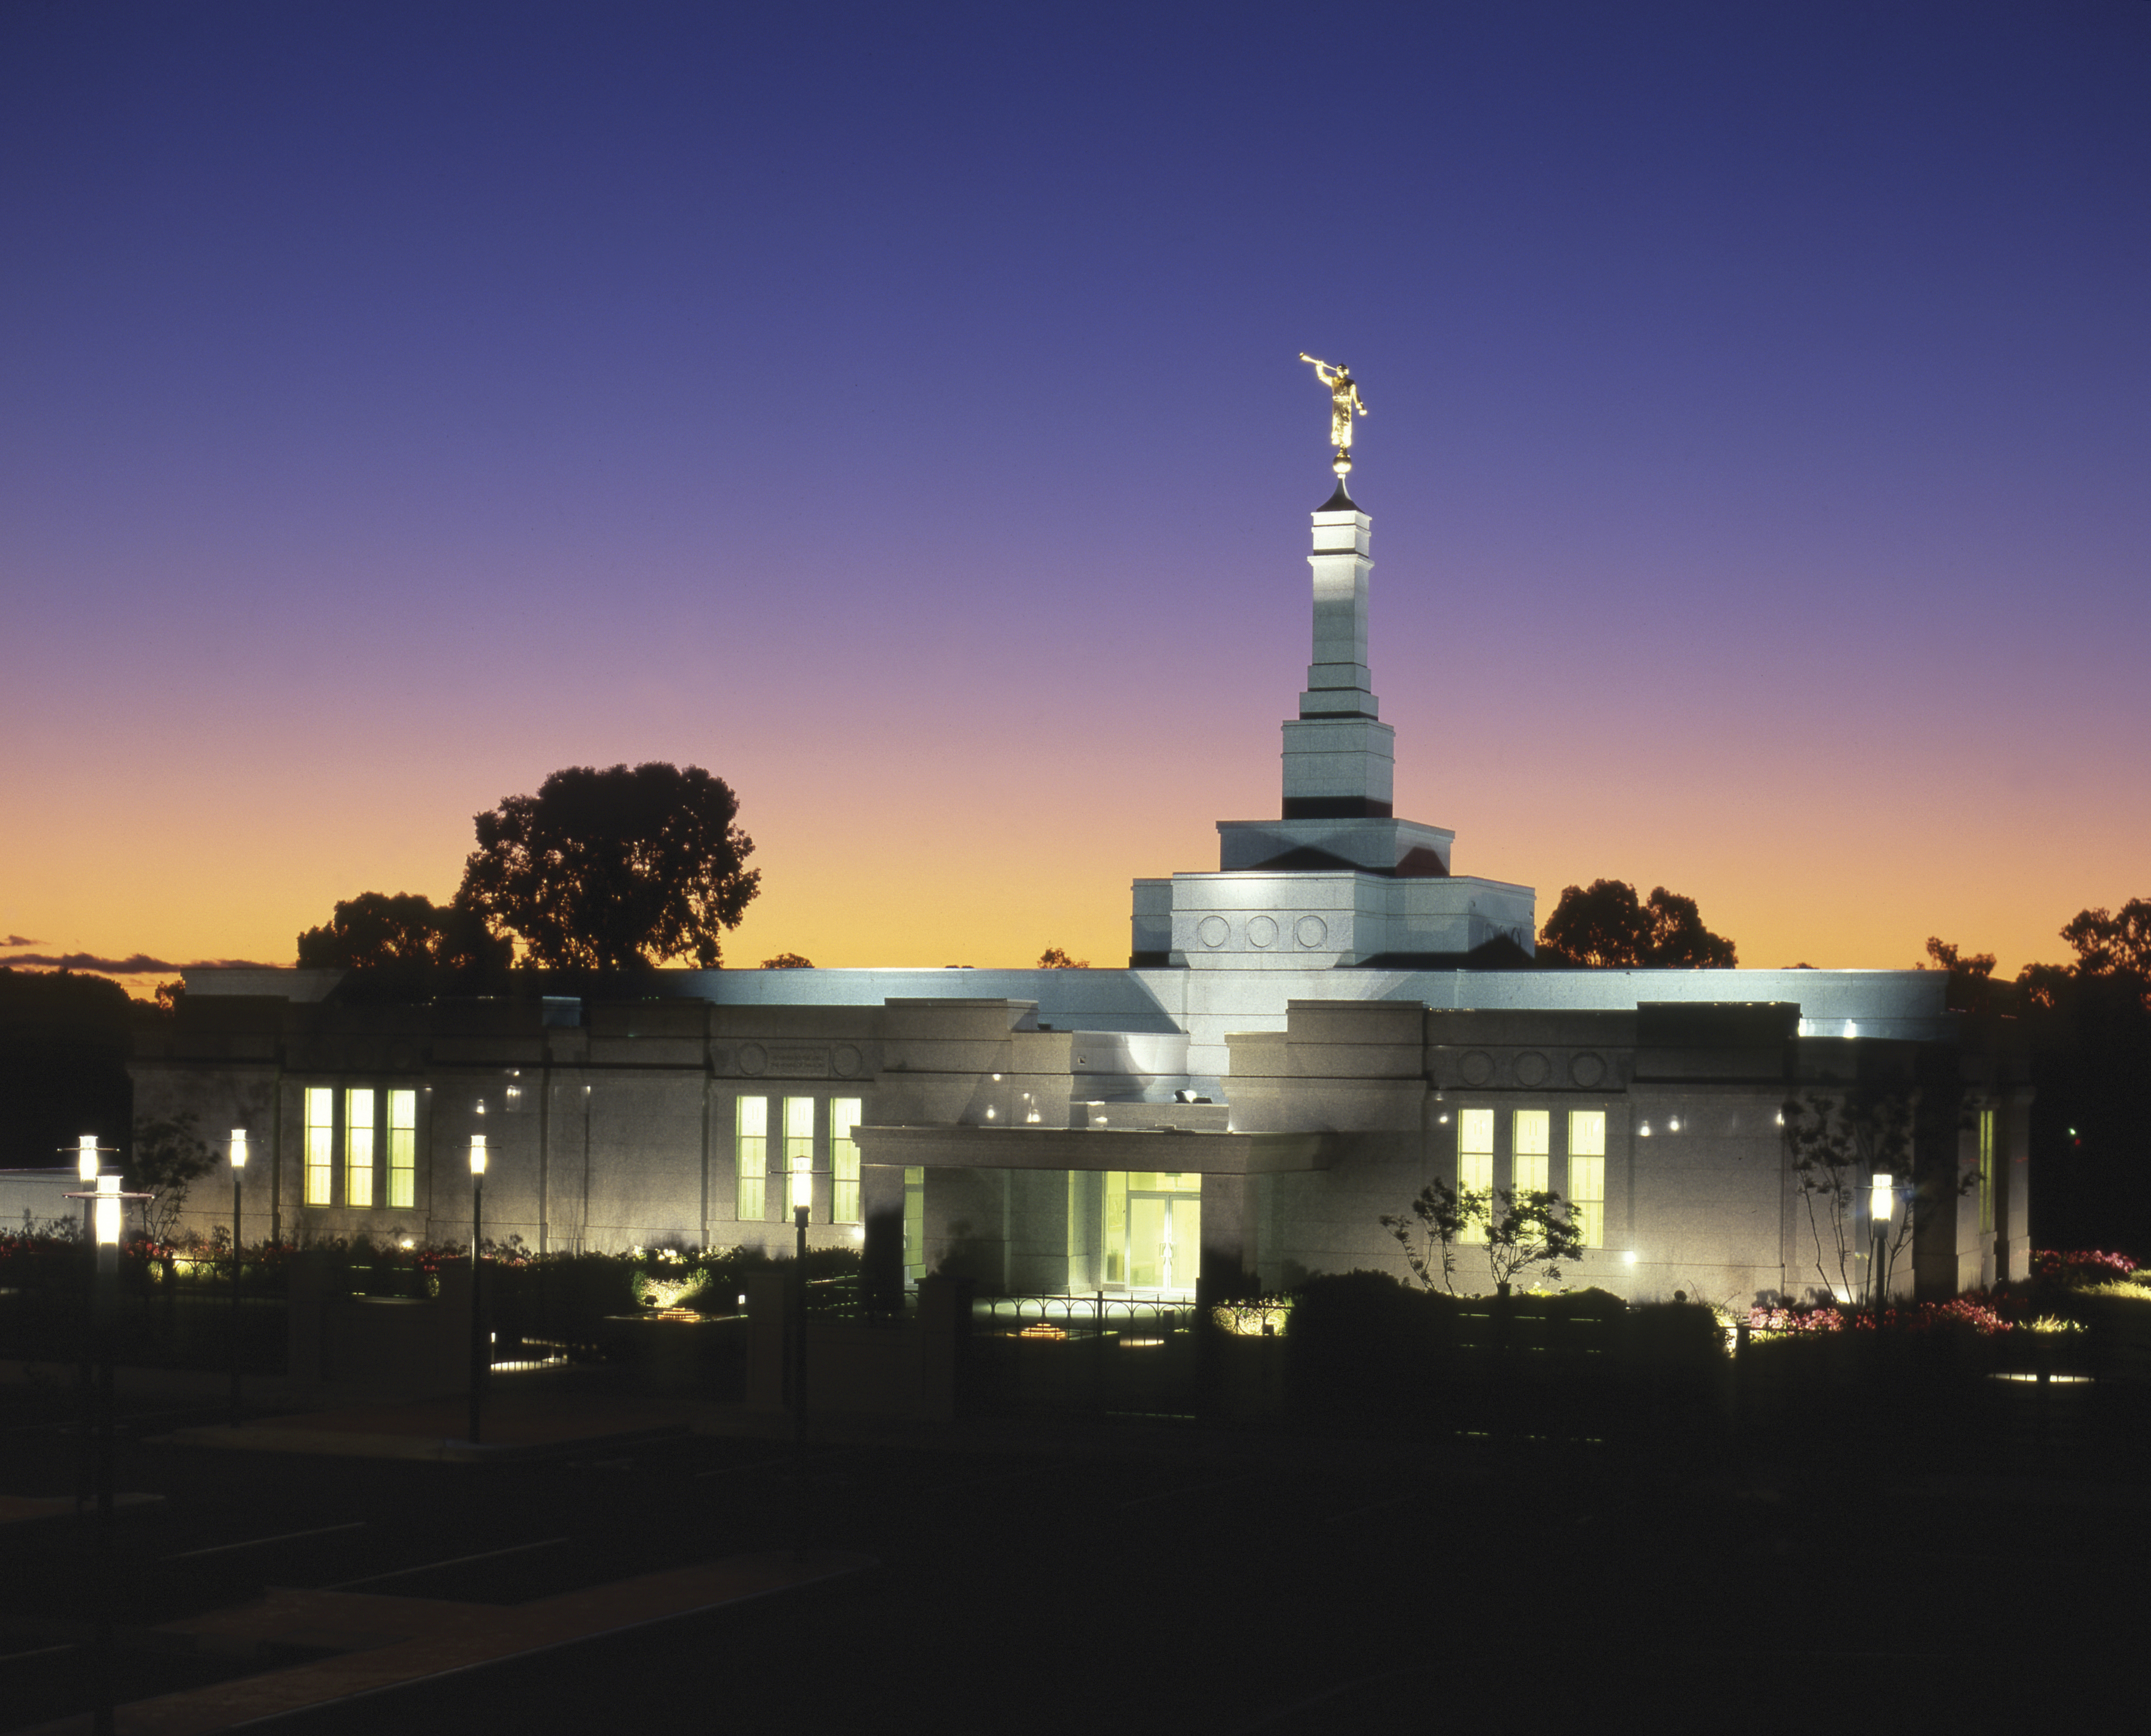 The exterior of the Adelaide Australia Temple is lit up at night.